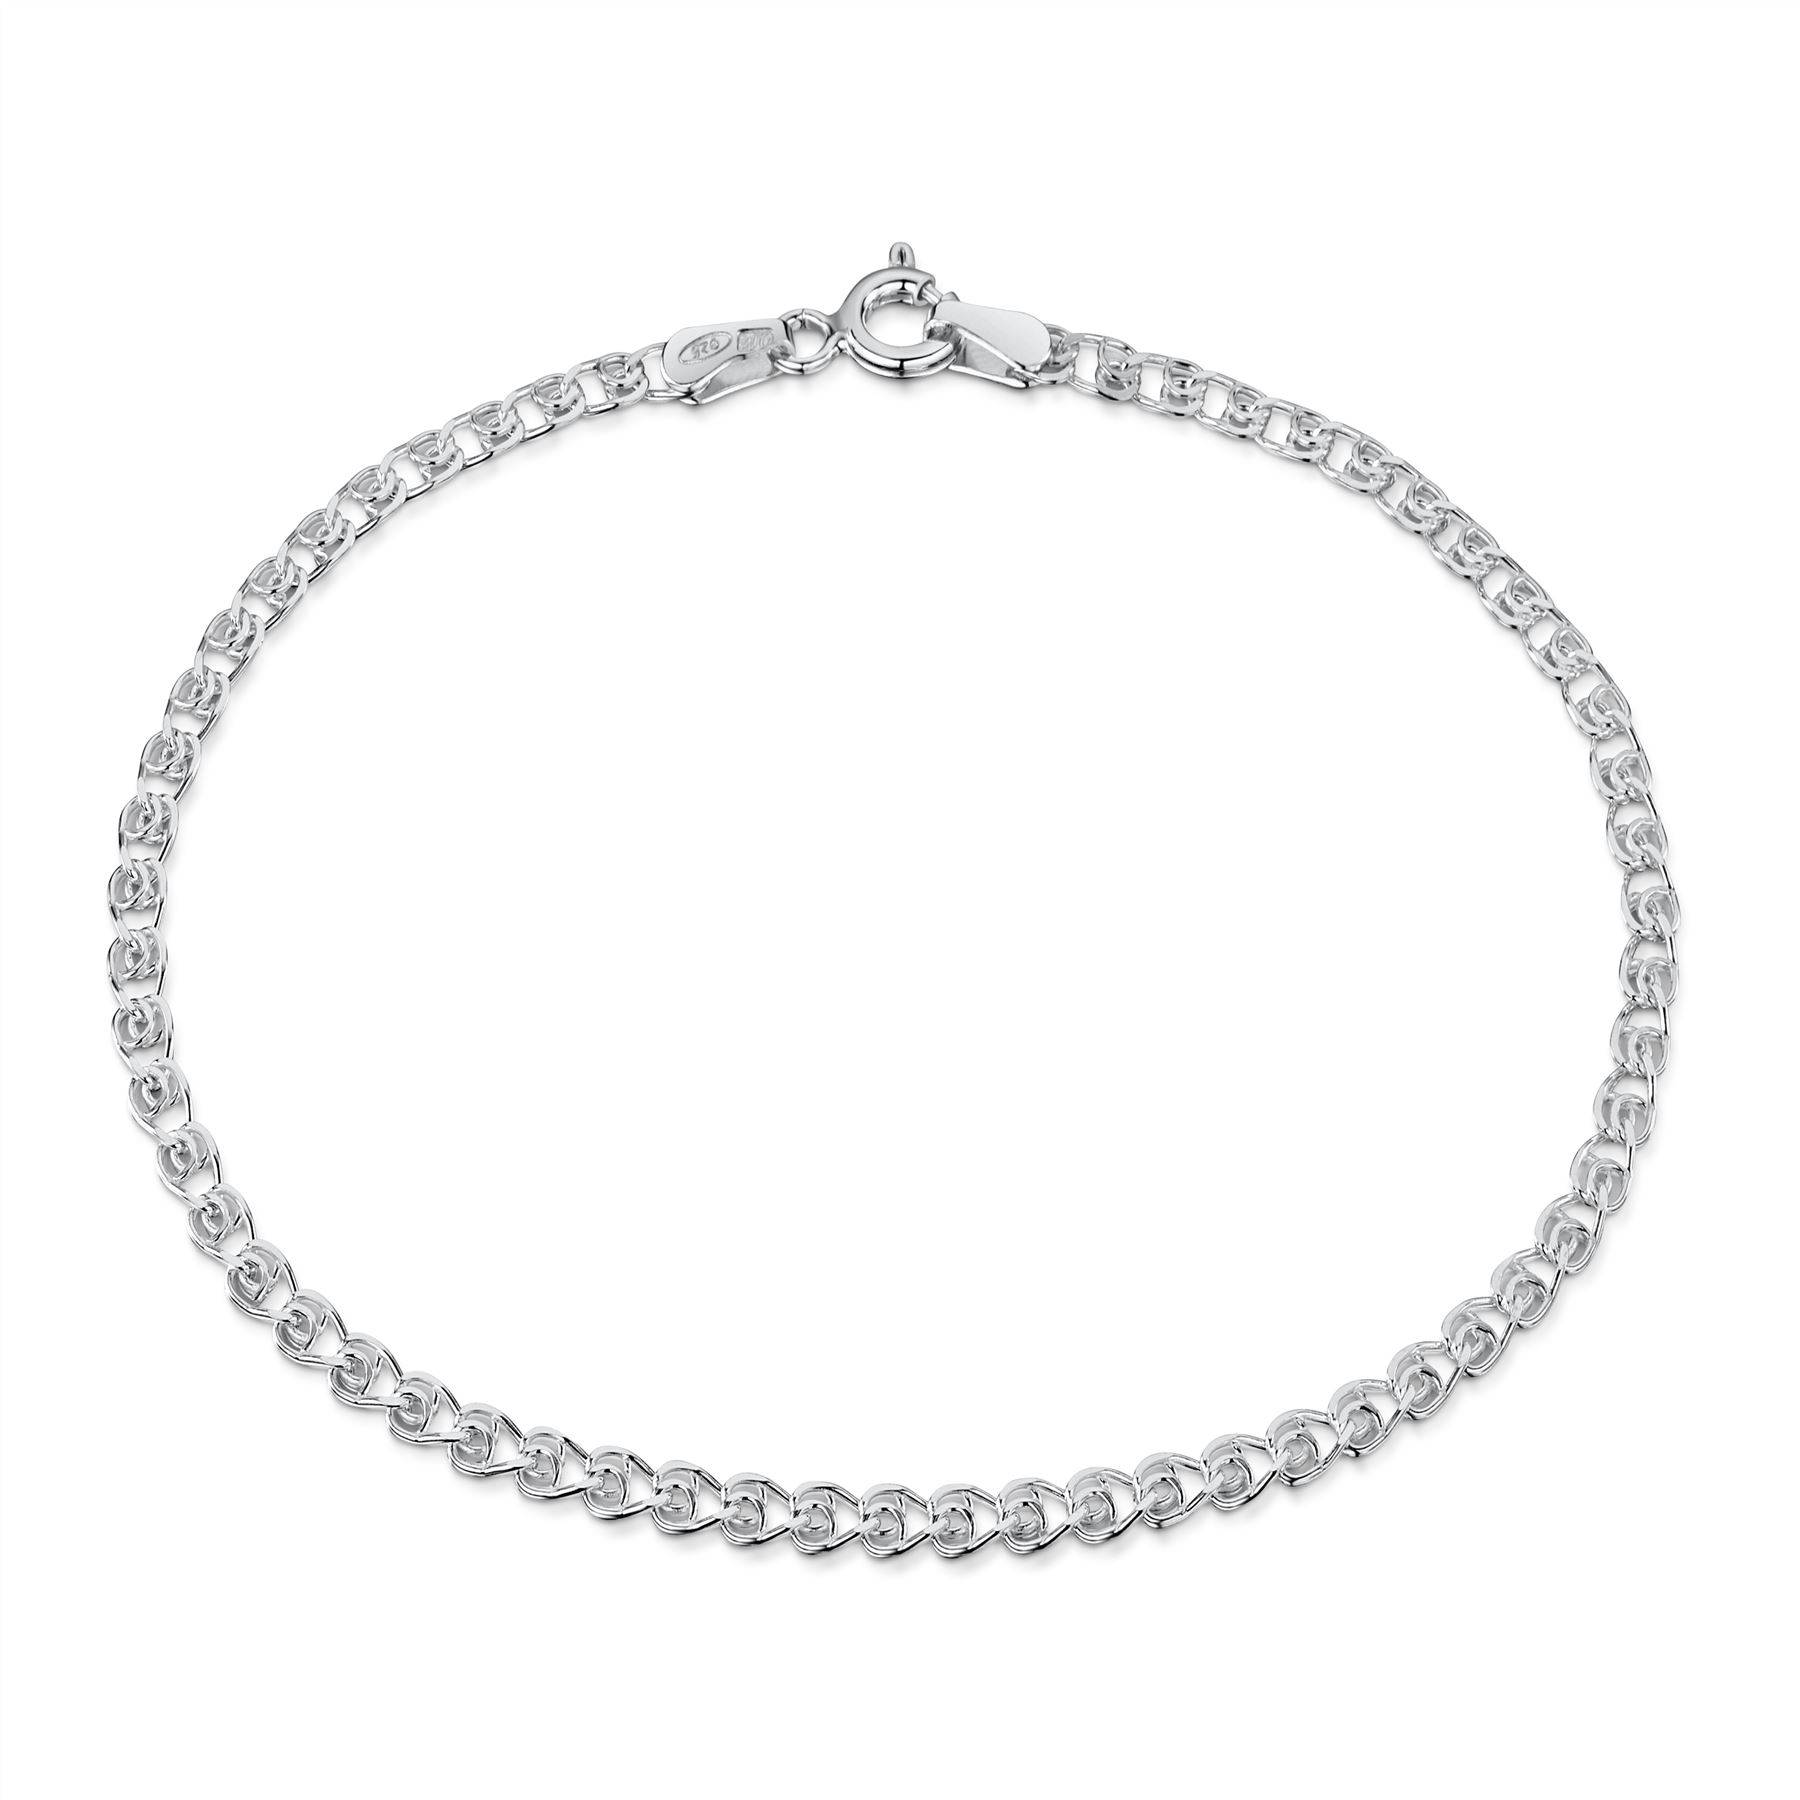 Amberta-Jewelry-Genuine-925-Sterling-Silver-Bracelet-Bangle-Chain-Made-in-Italy thumbnail 64